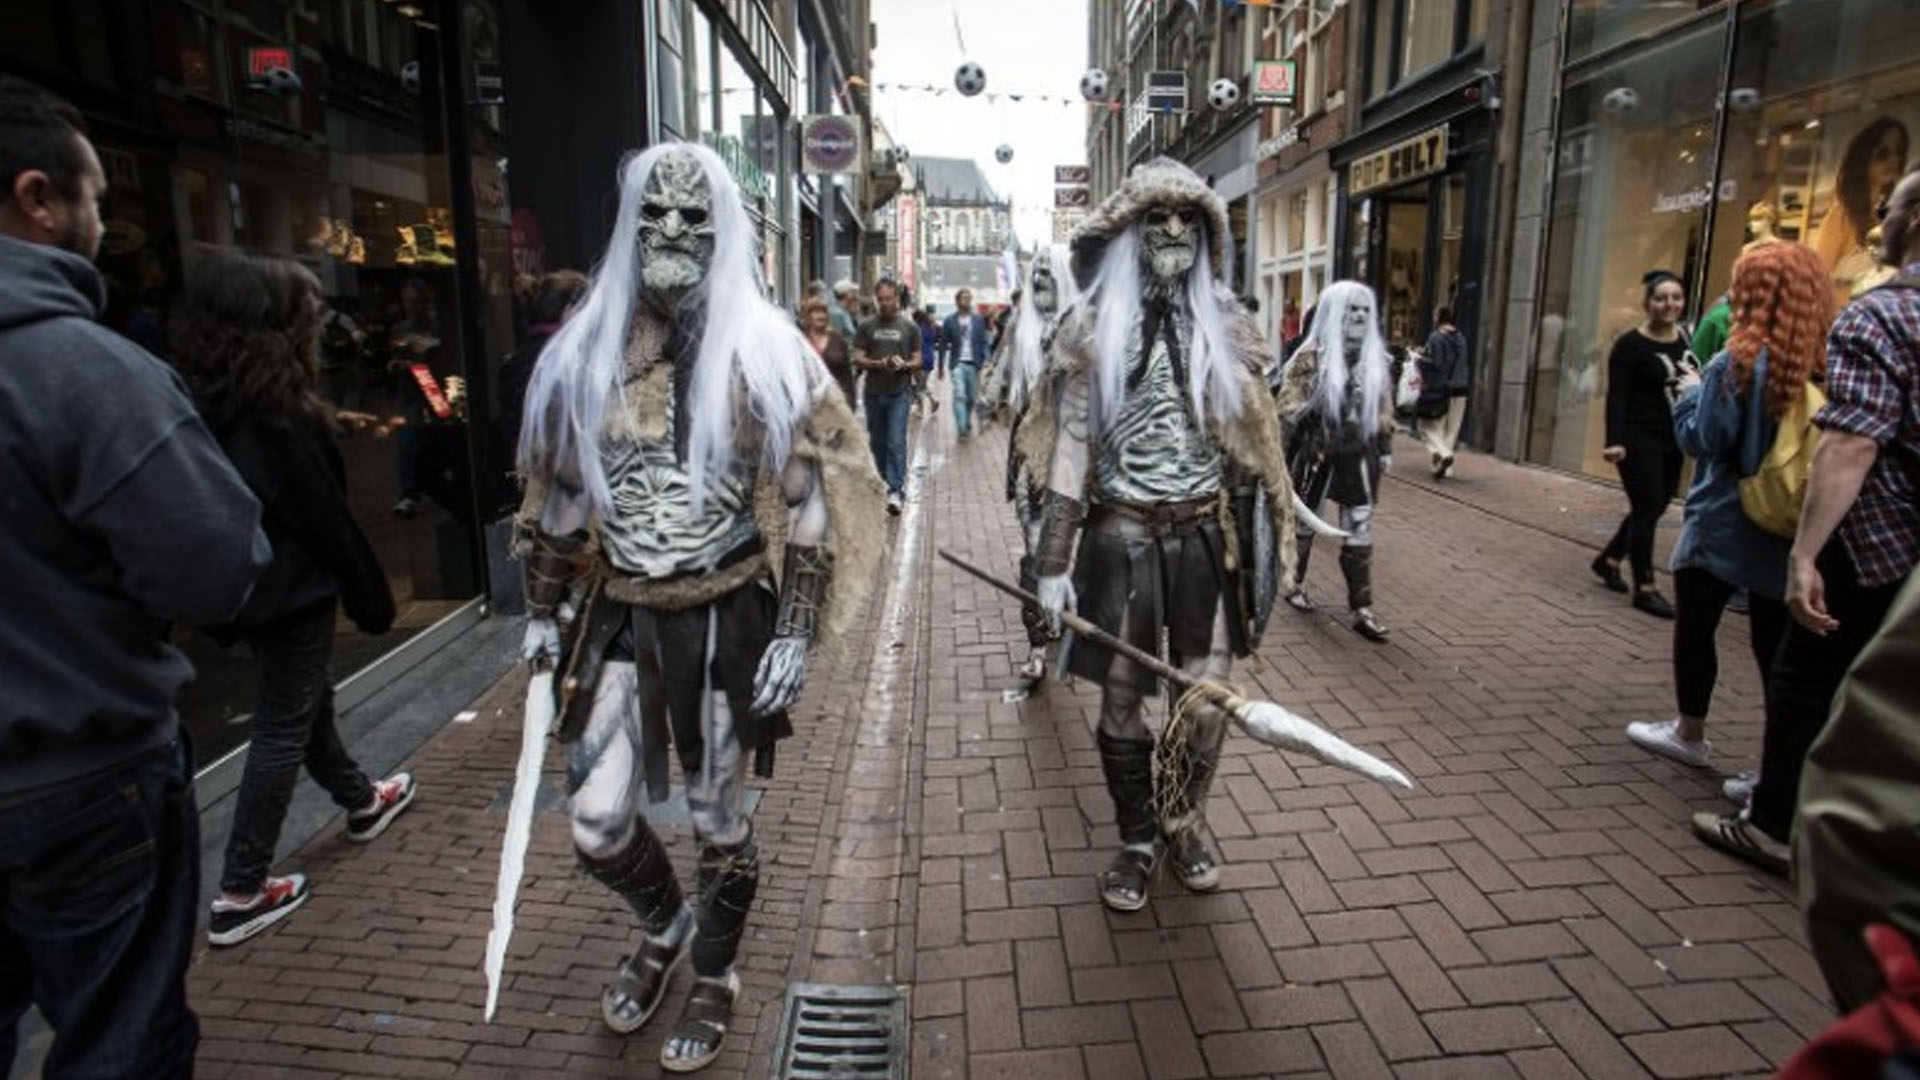 HBO-Game-Of-Thrones-White-Walkers-guerilla-marketing-pr-stunt